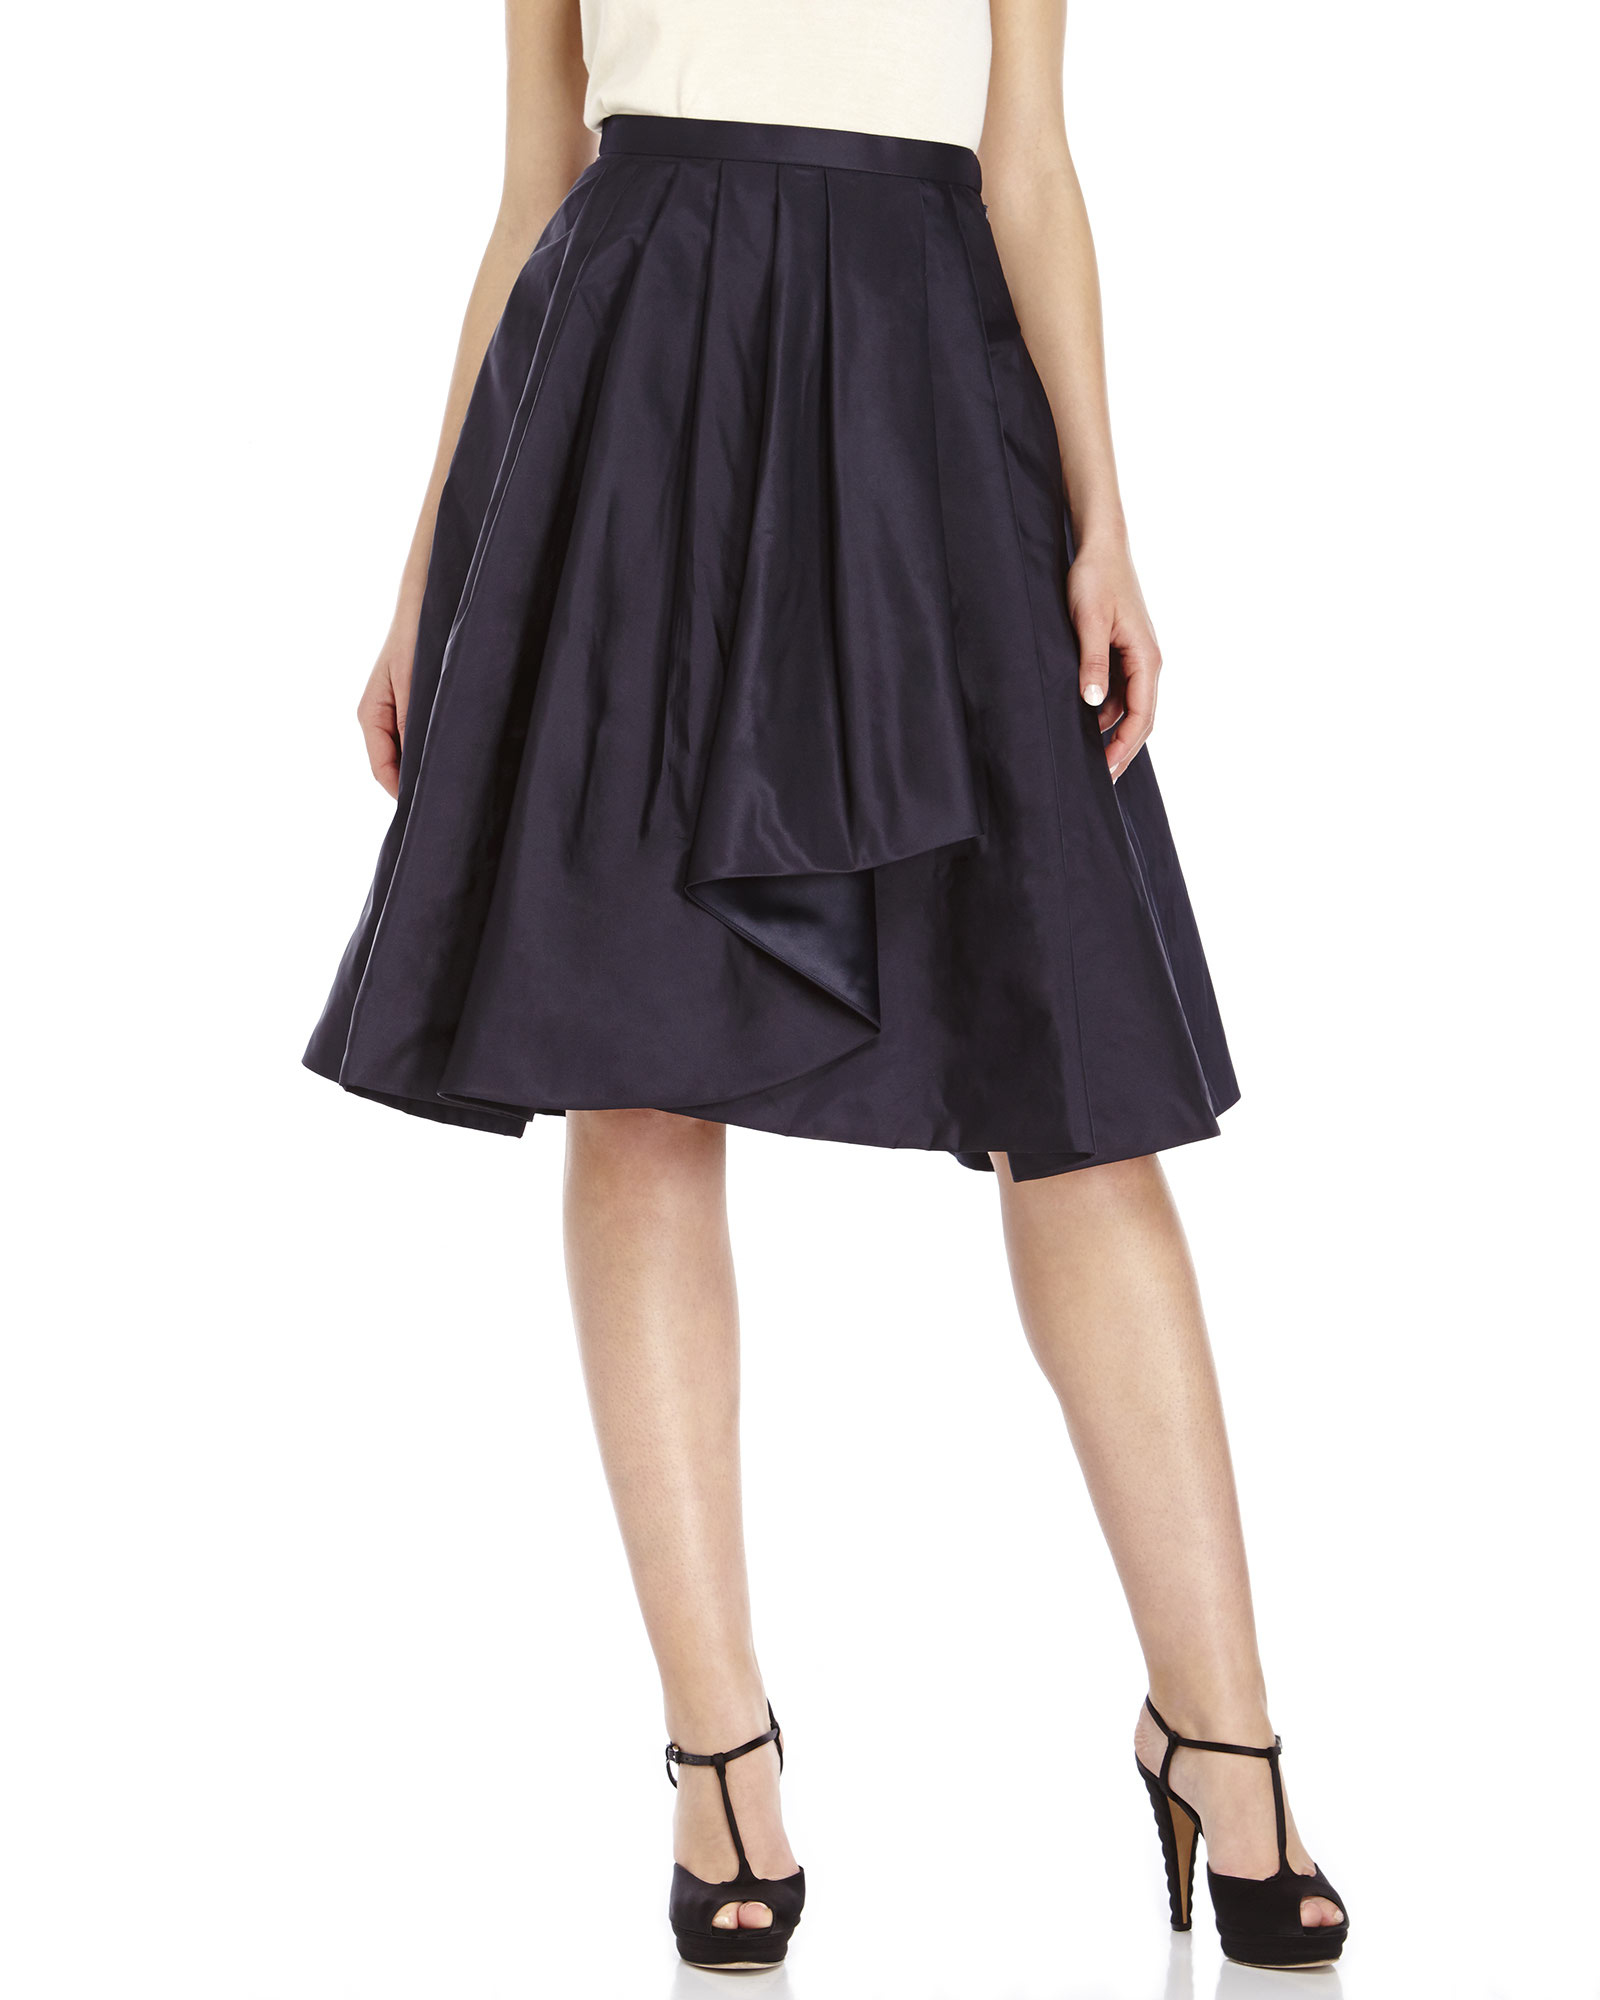 Jason wu Navy Pleated A-Line Silk Skirt in Blue | Lyst